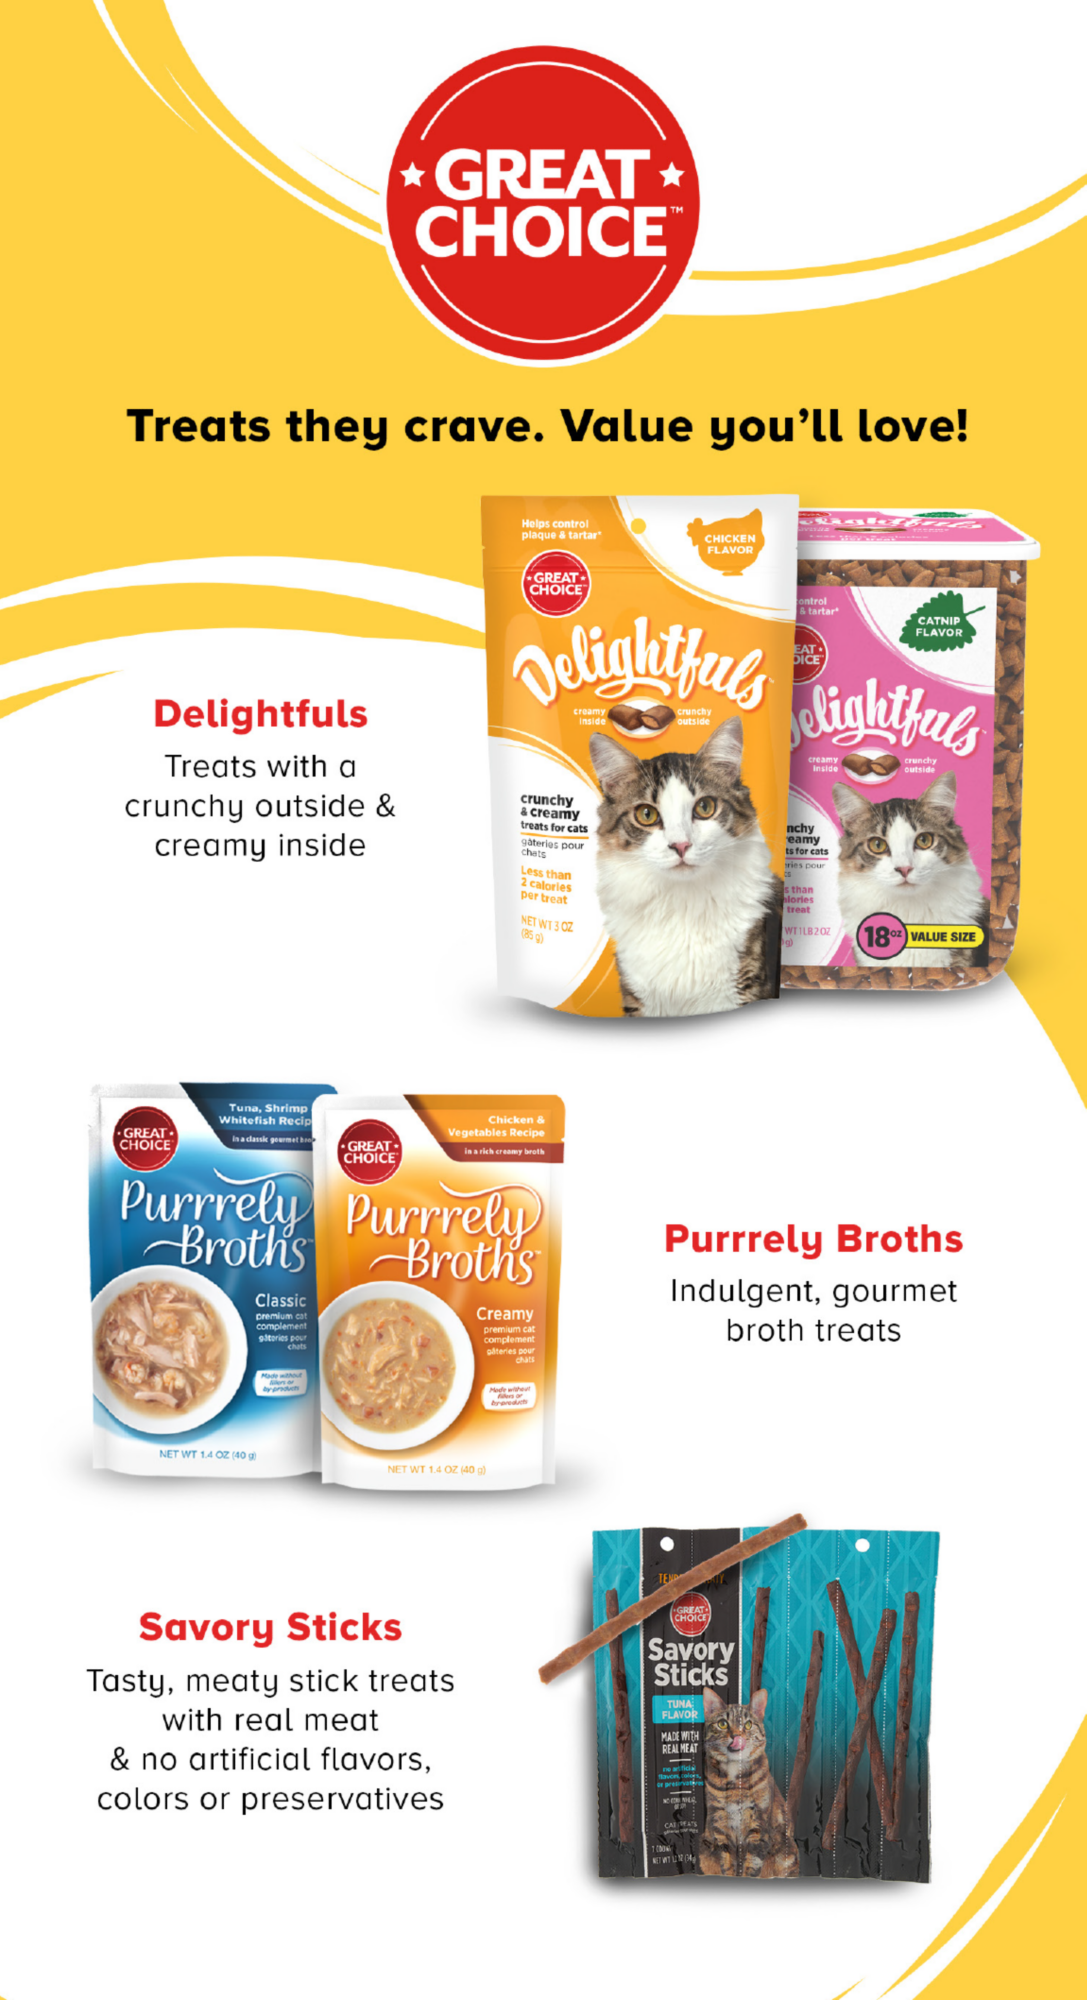 Great Choice Treats they crave. Value you'll love! Delightfuls Treats with a crunchy outside & creamy inside. Purrrely Broths Indulgent, gourmet broth treats. Savory Sticks Tasty, meaty stick treats with real meat & no artificial flavors, colors or preservatives.